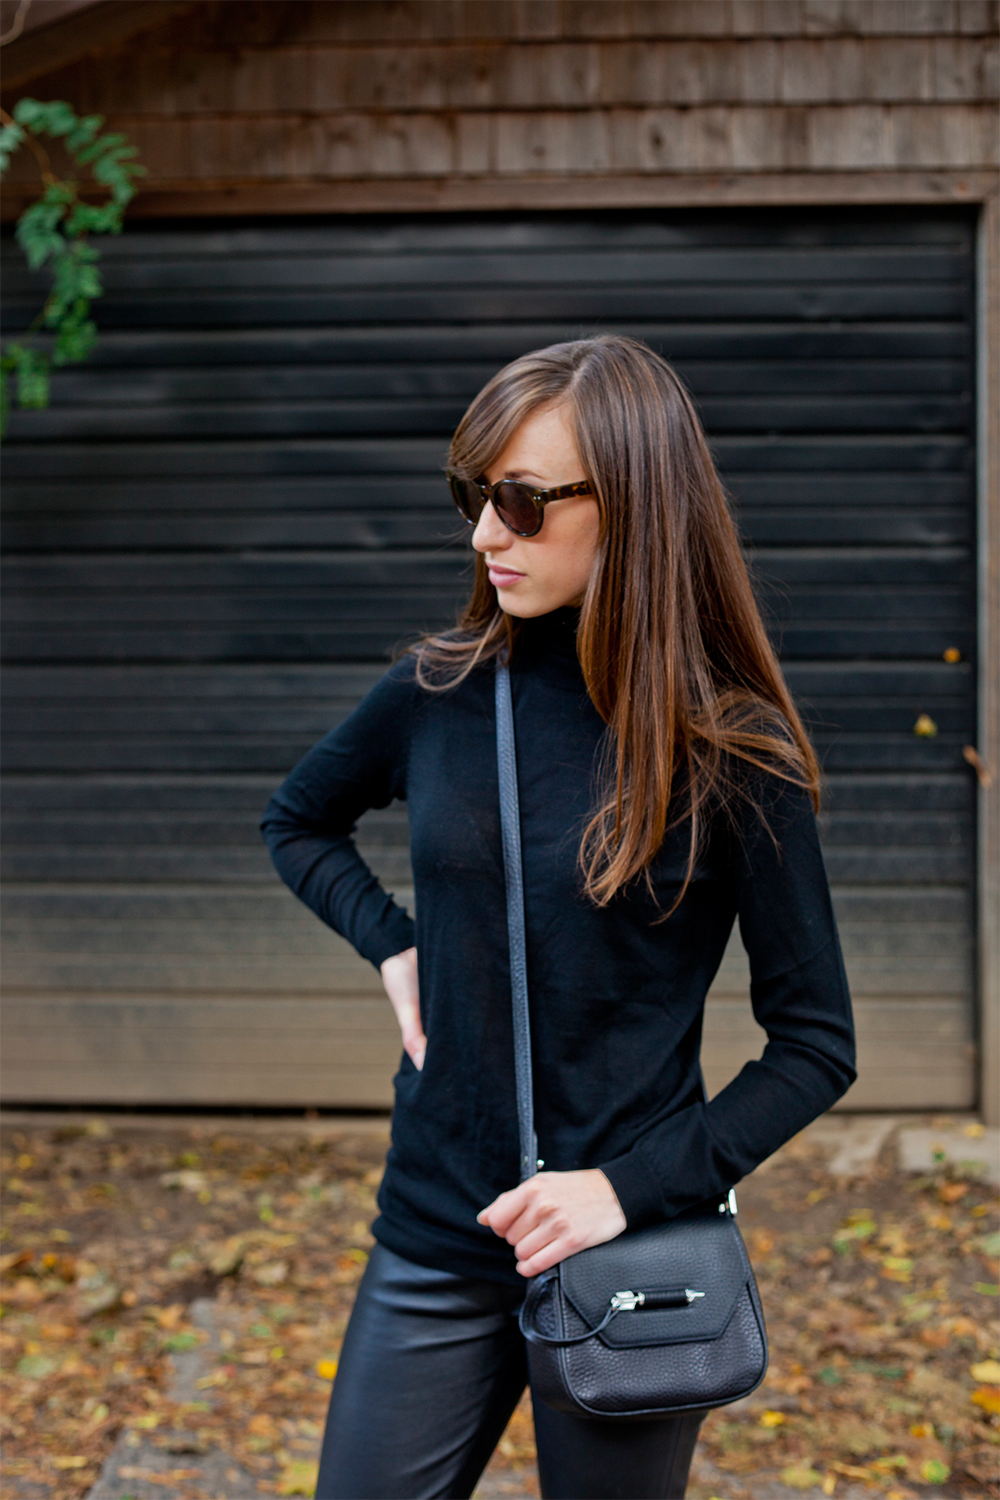 Style Bee in a black turtleneck and Mackage bag.